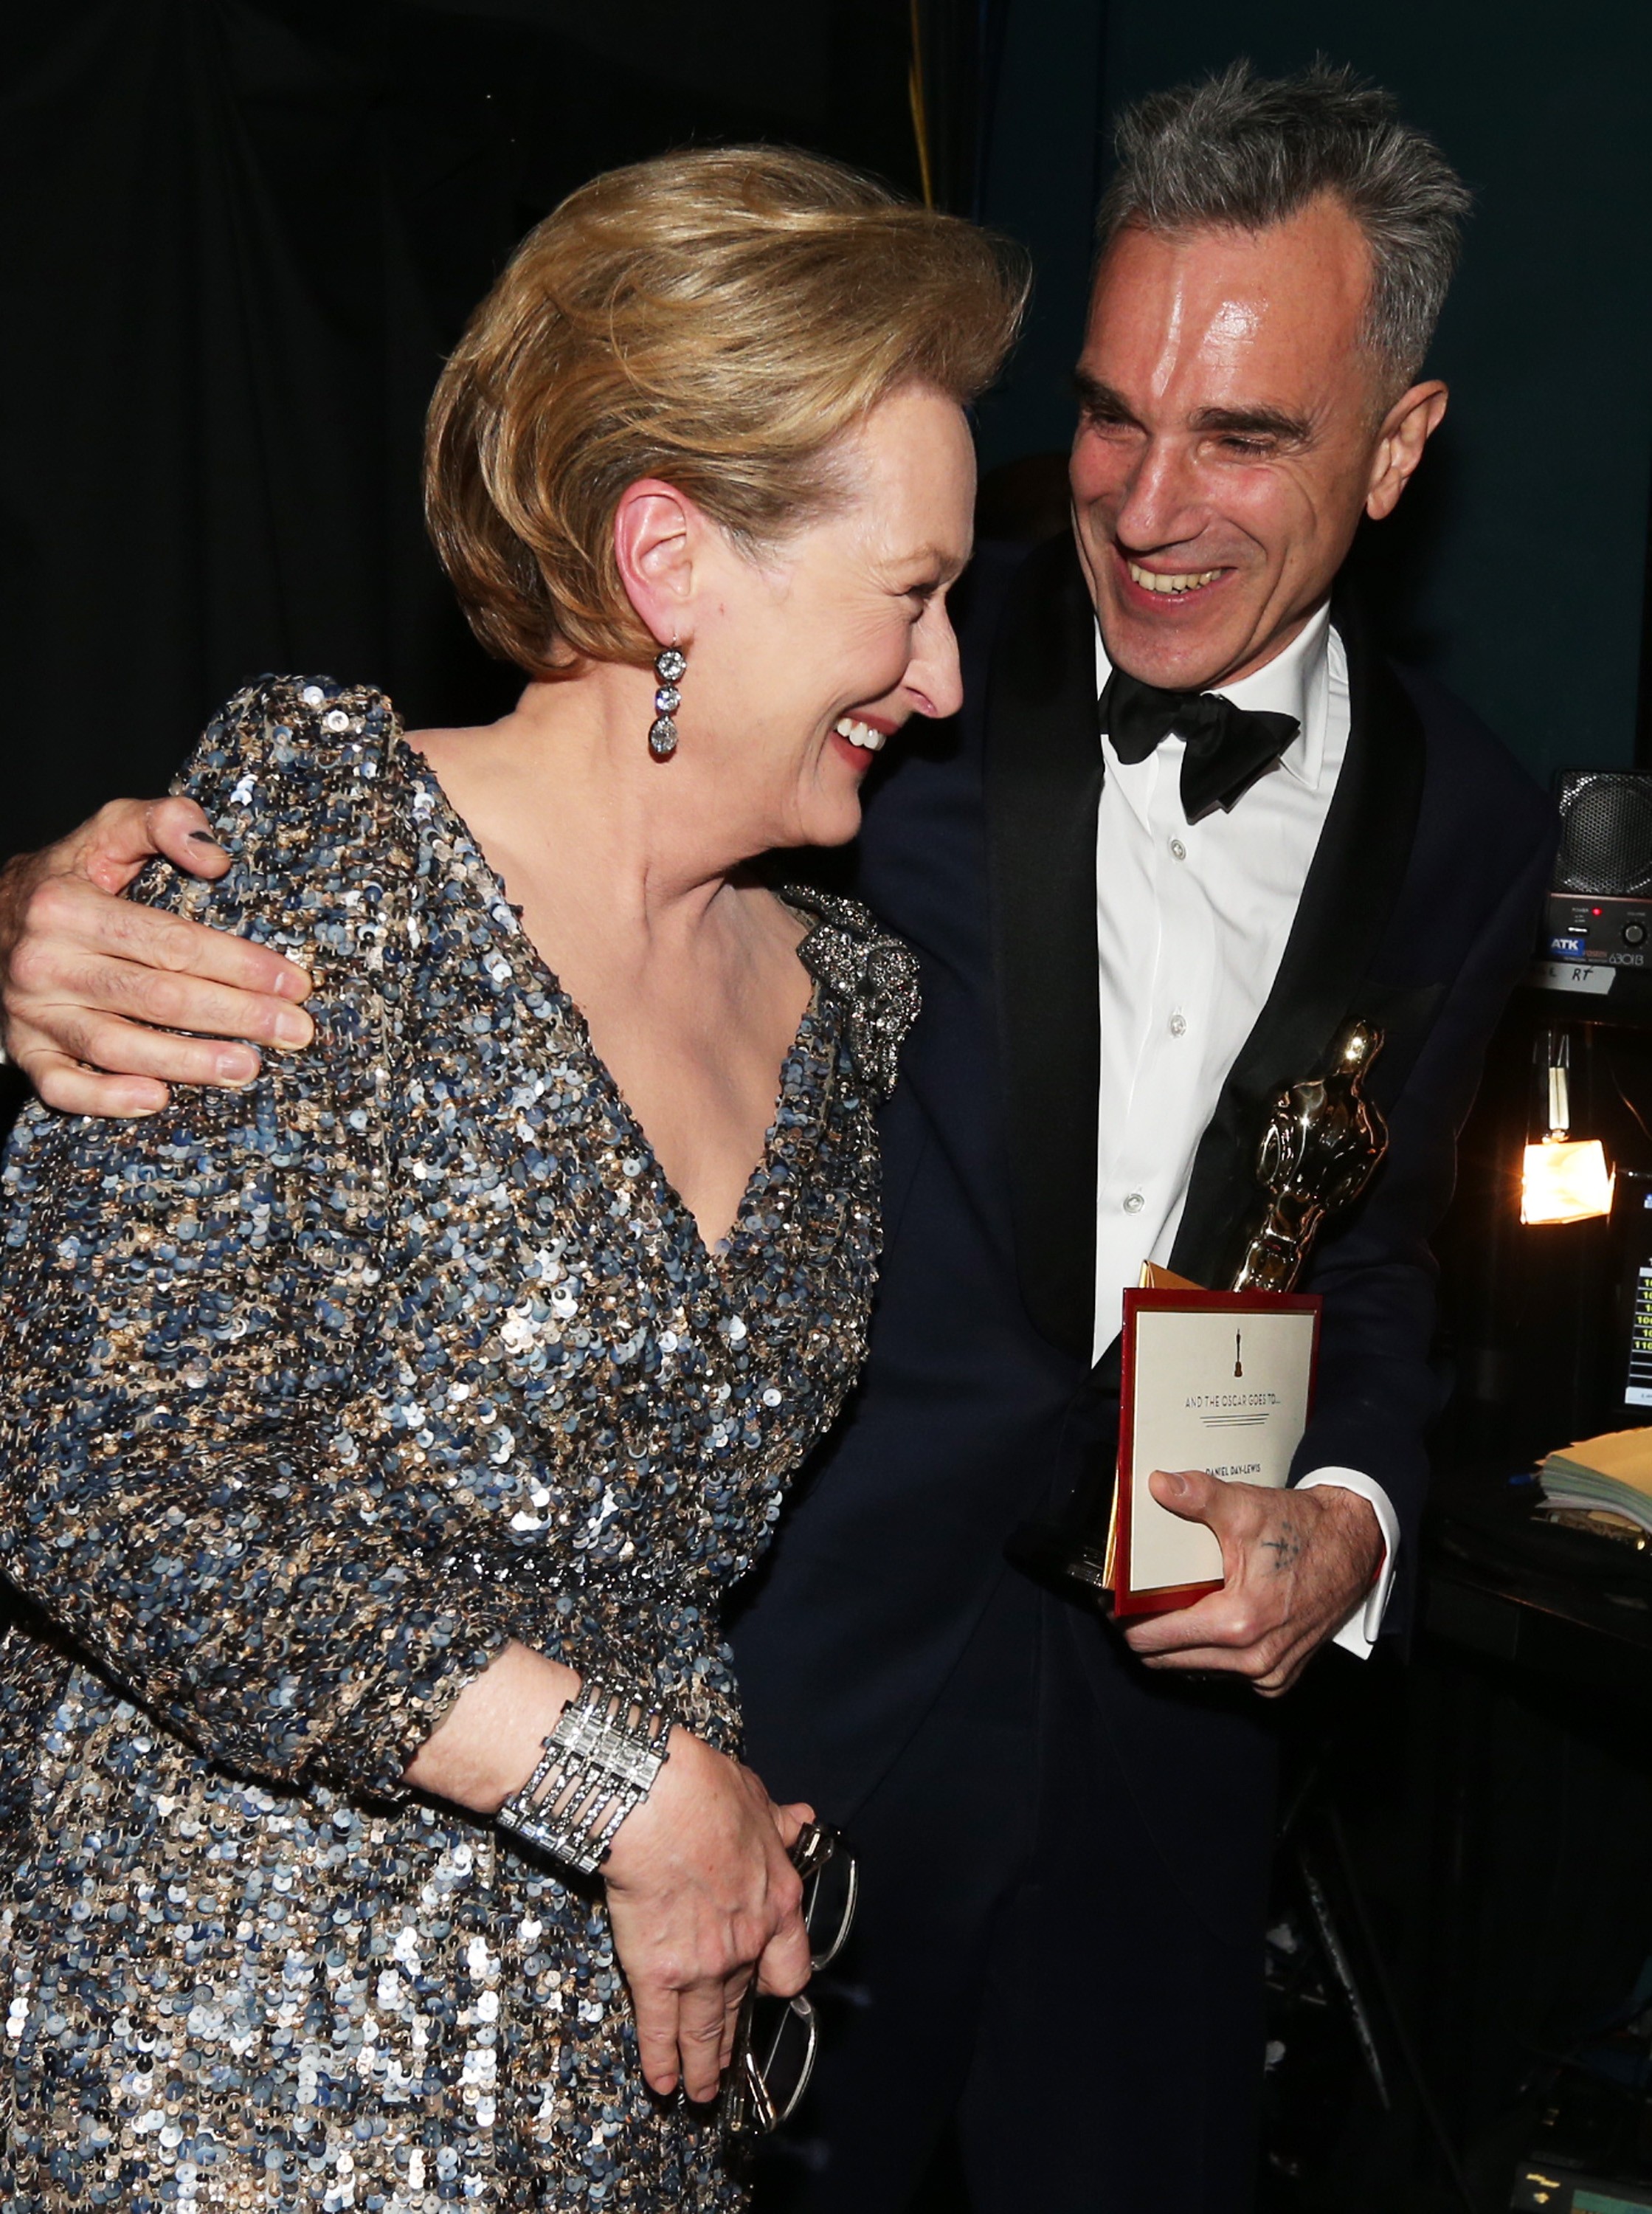 Meryl Streep and Daniel Day-Lewis backstage at the